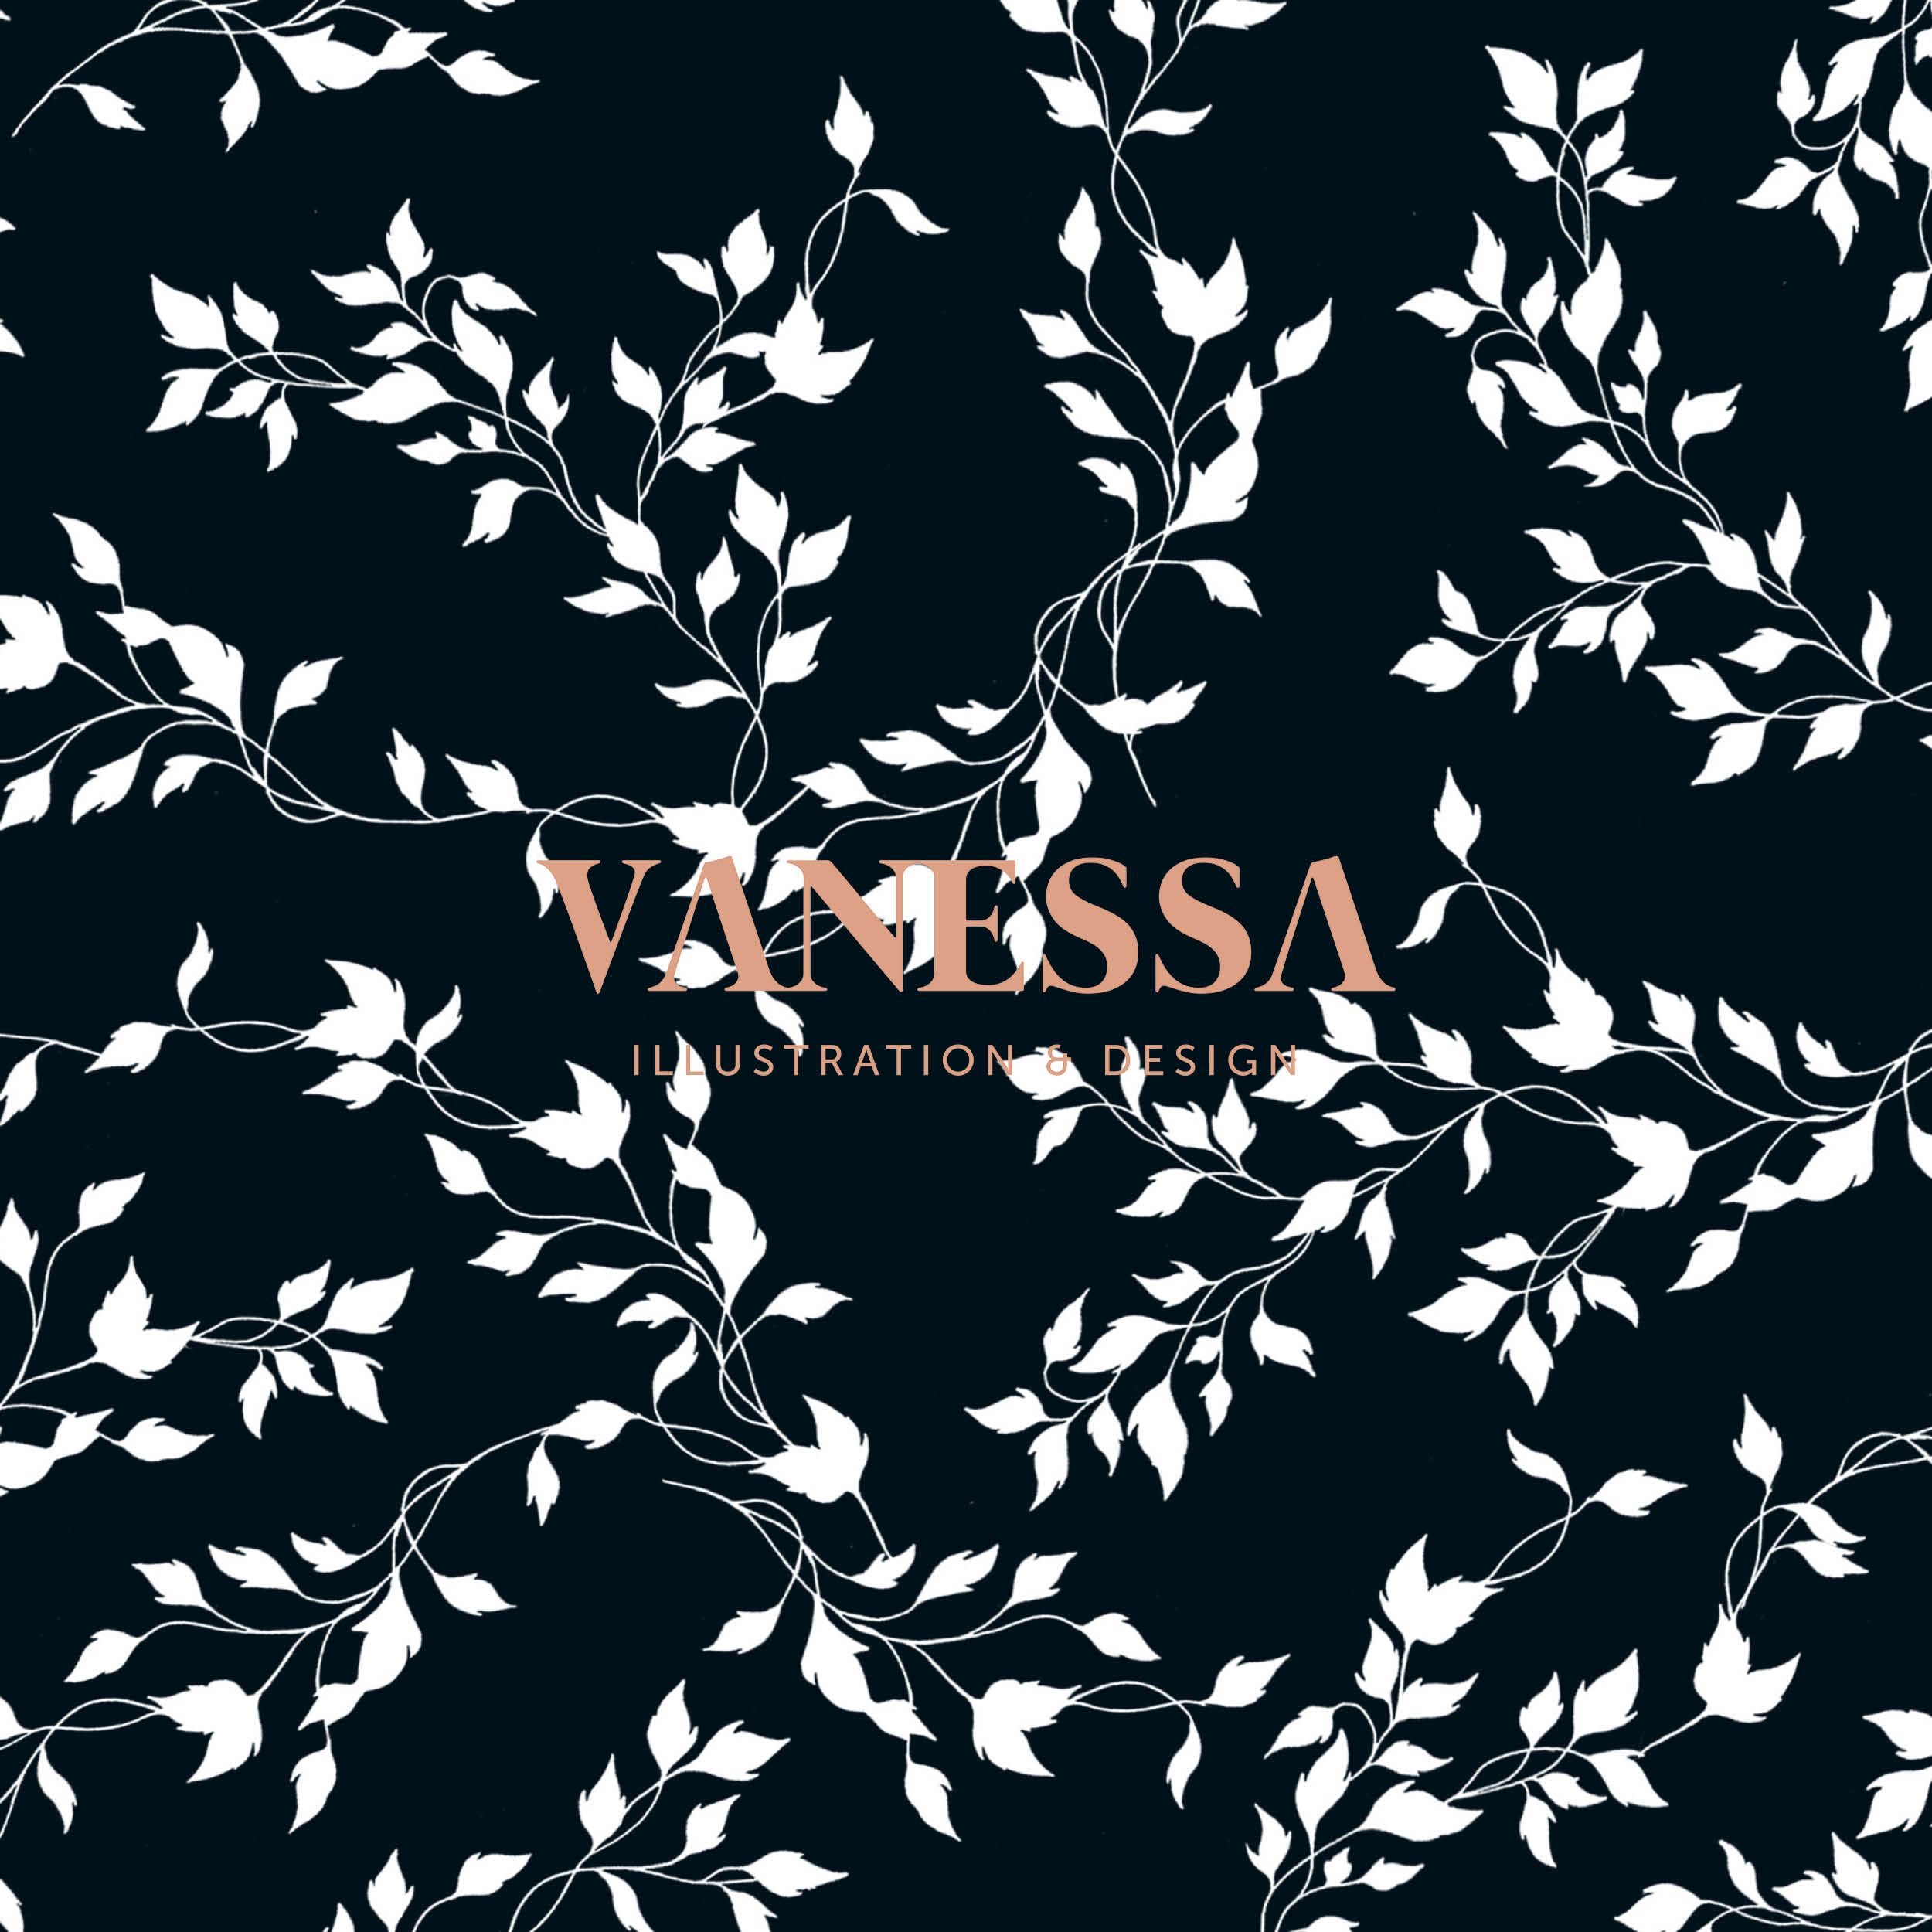 Vanessa Vanderhaven Illustration and Design16.jpg